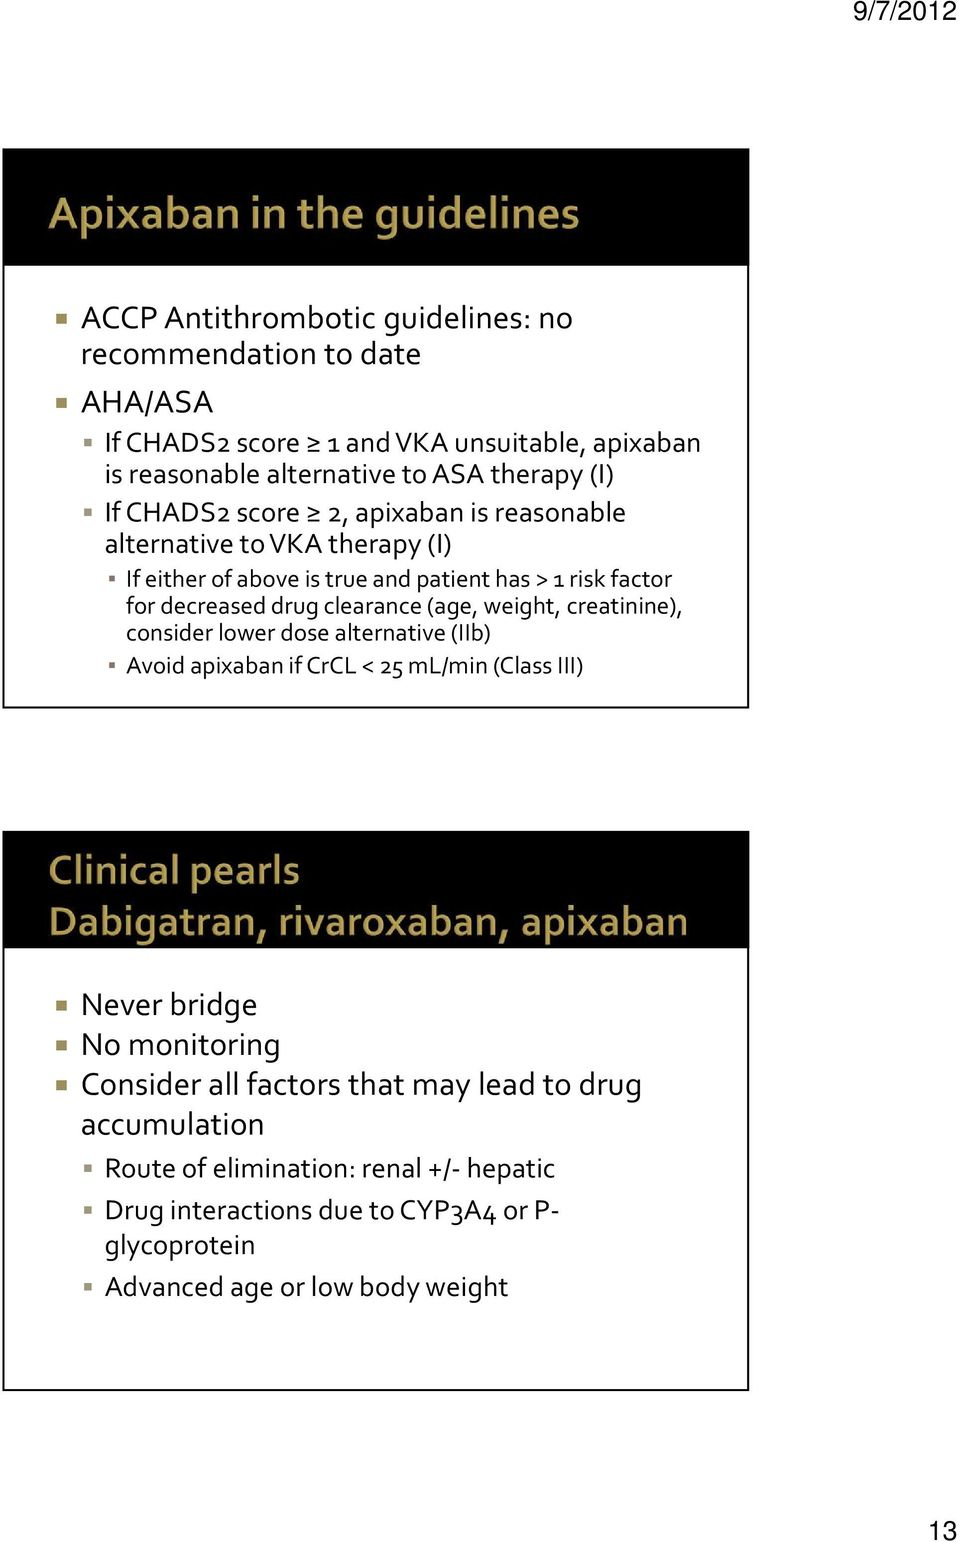 clearance (age, weight, creatinine), consider lower dose alternative (IIb) Avoid apixaban if CrCL < 25 ml/min (Class III) Never bridge No monitoring Consider